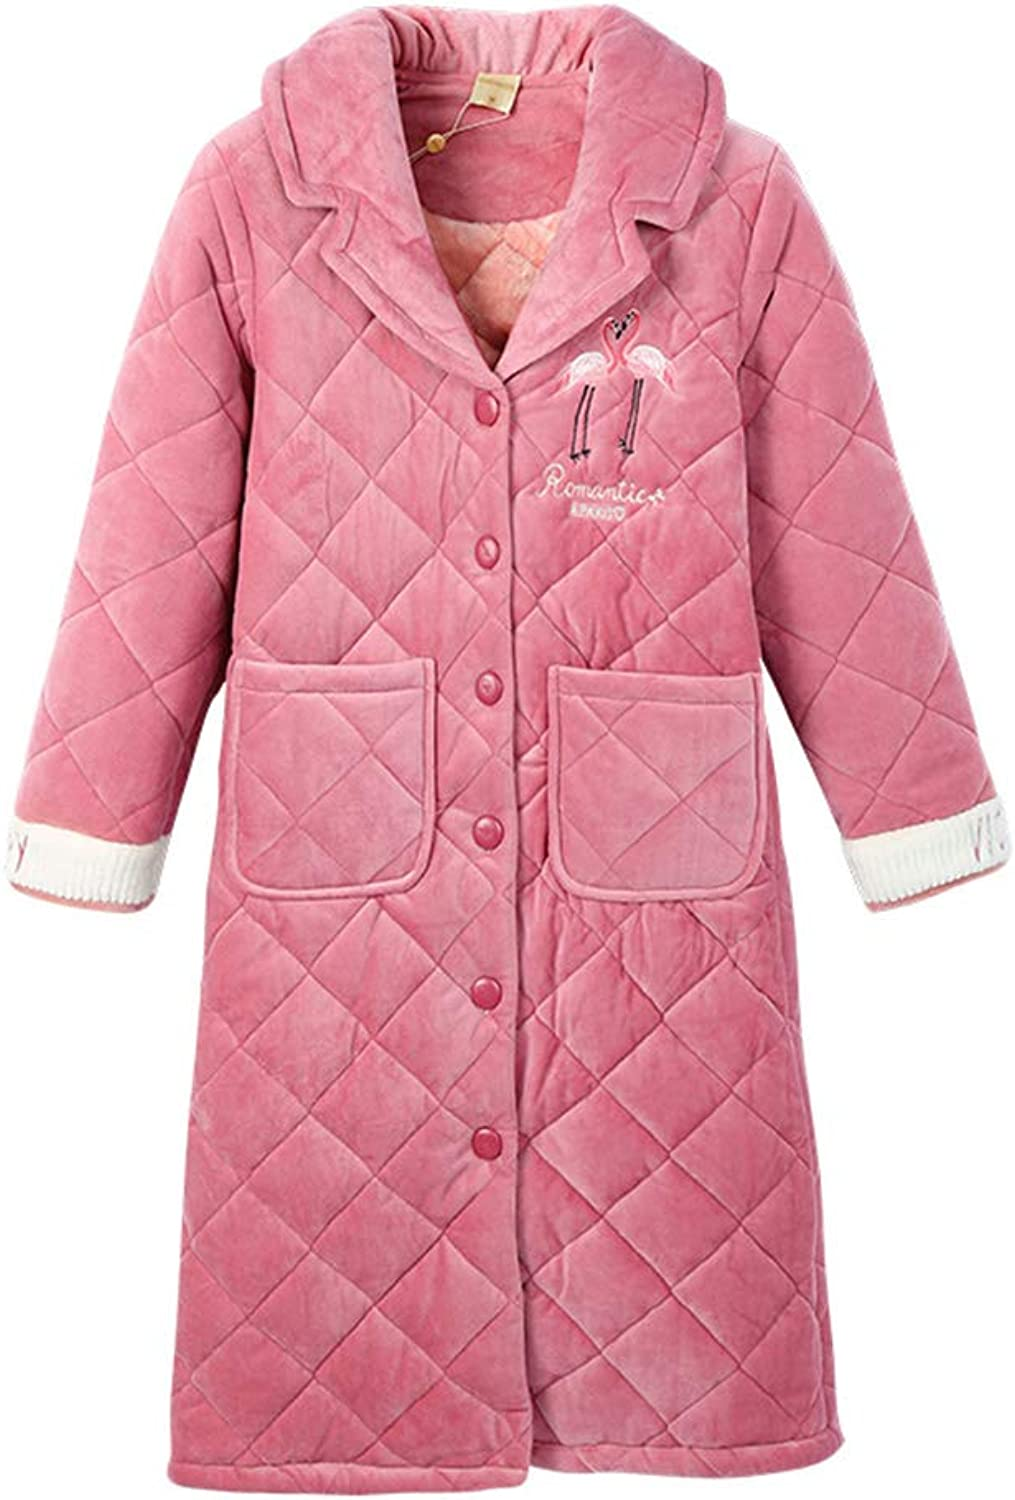 Pajamas Coral Quilted Robes Women's ThreeLayer Thick Flannel Bathrobes can be Worn Outside The Home Service (color   Pink, Size   L)